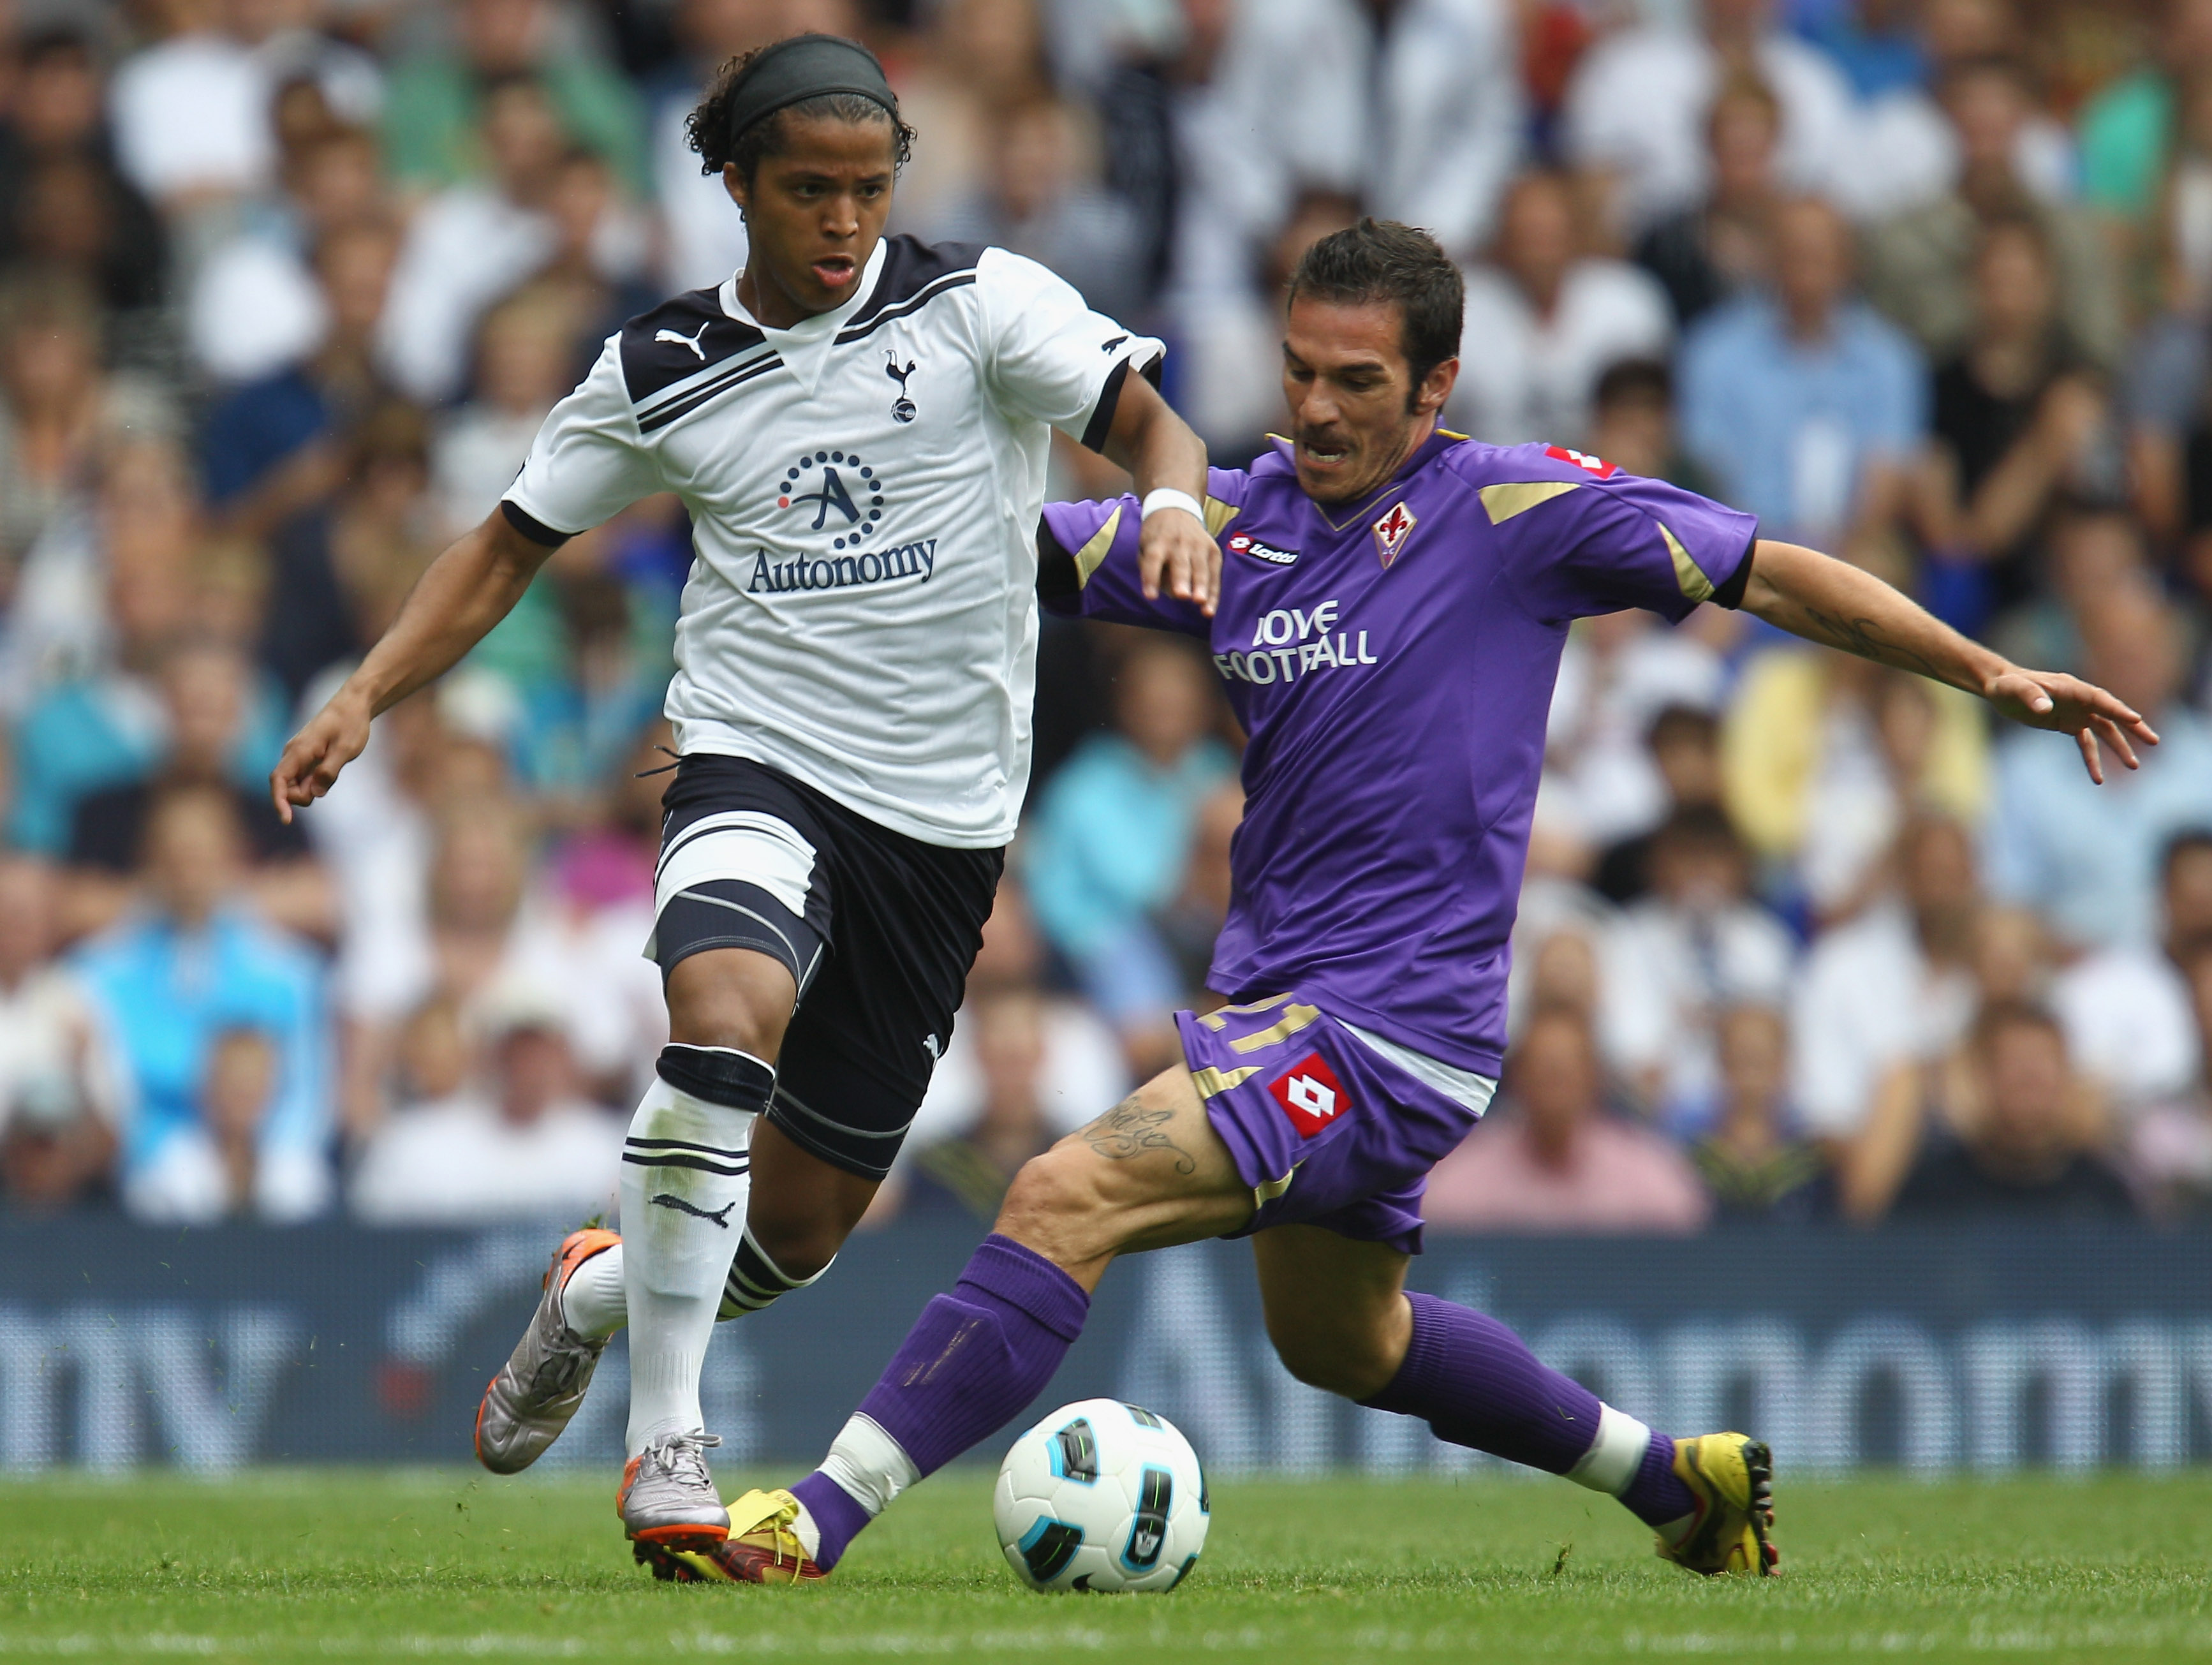 LONDON, ENGLAND - AUGUST 07:  Giovani Dos Santos of Tottenham Hotspur battles for the ball with Gaetano D'Agostino of Fiorentina during the pre-season friendly match between Tottenham Hotspur and Fiorentina at White Hart Lane on August 7, 2010 in London,